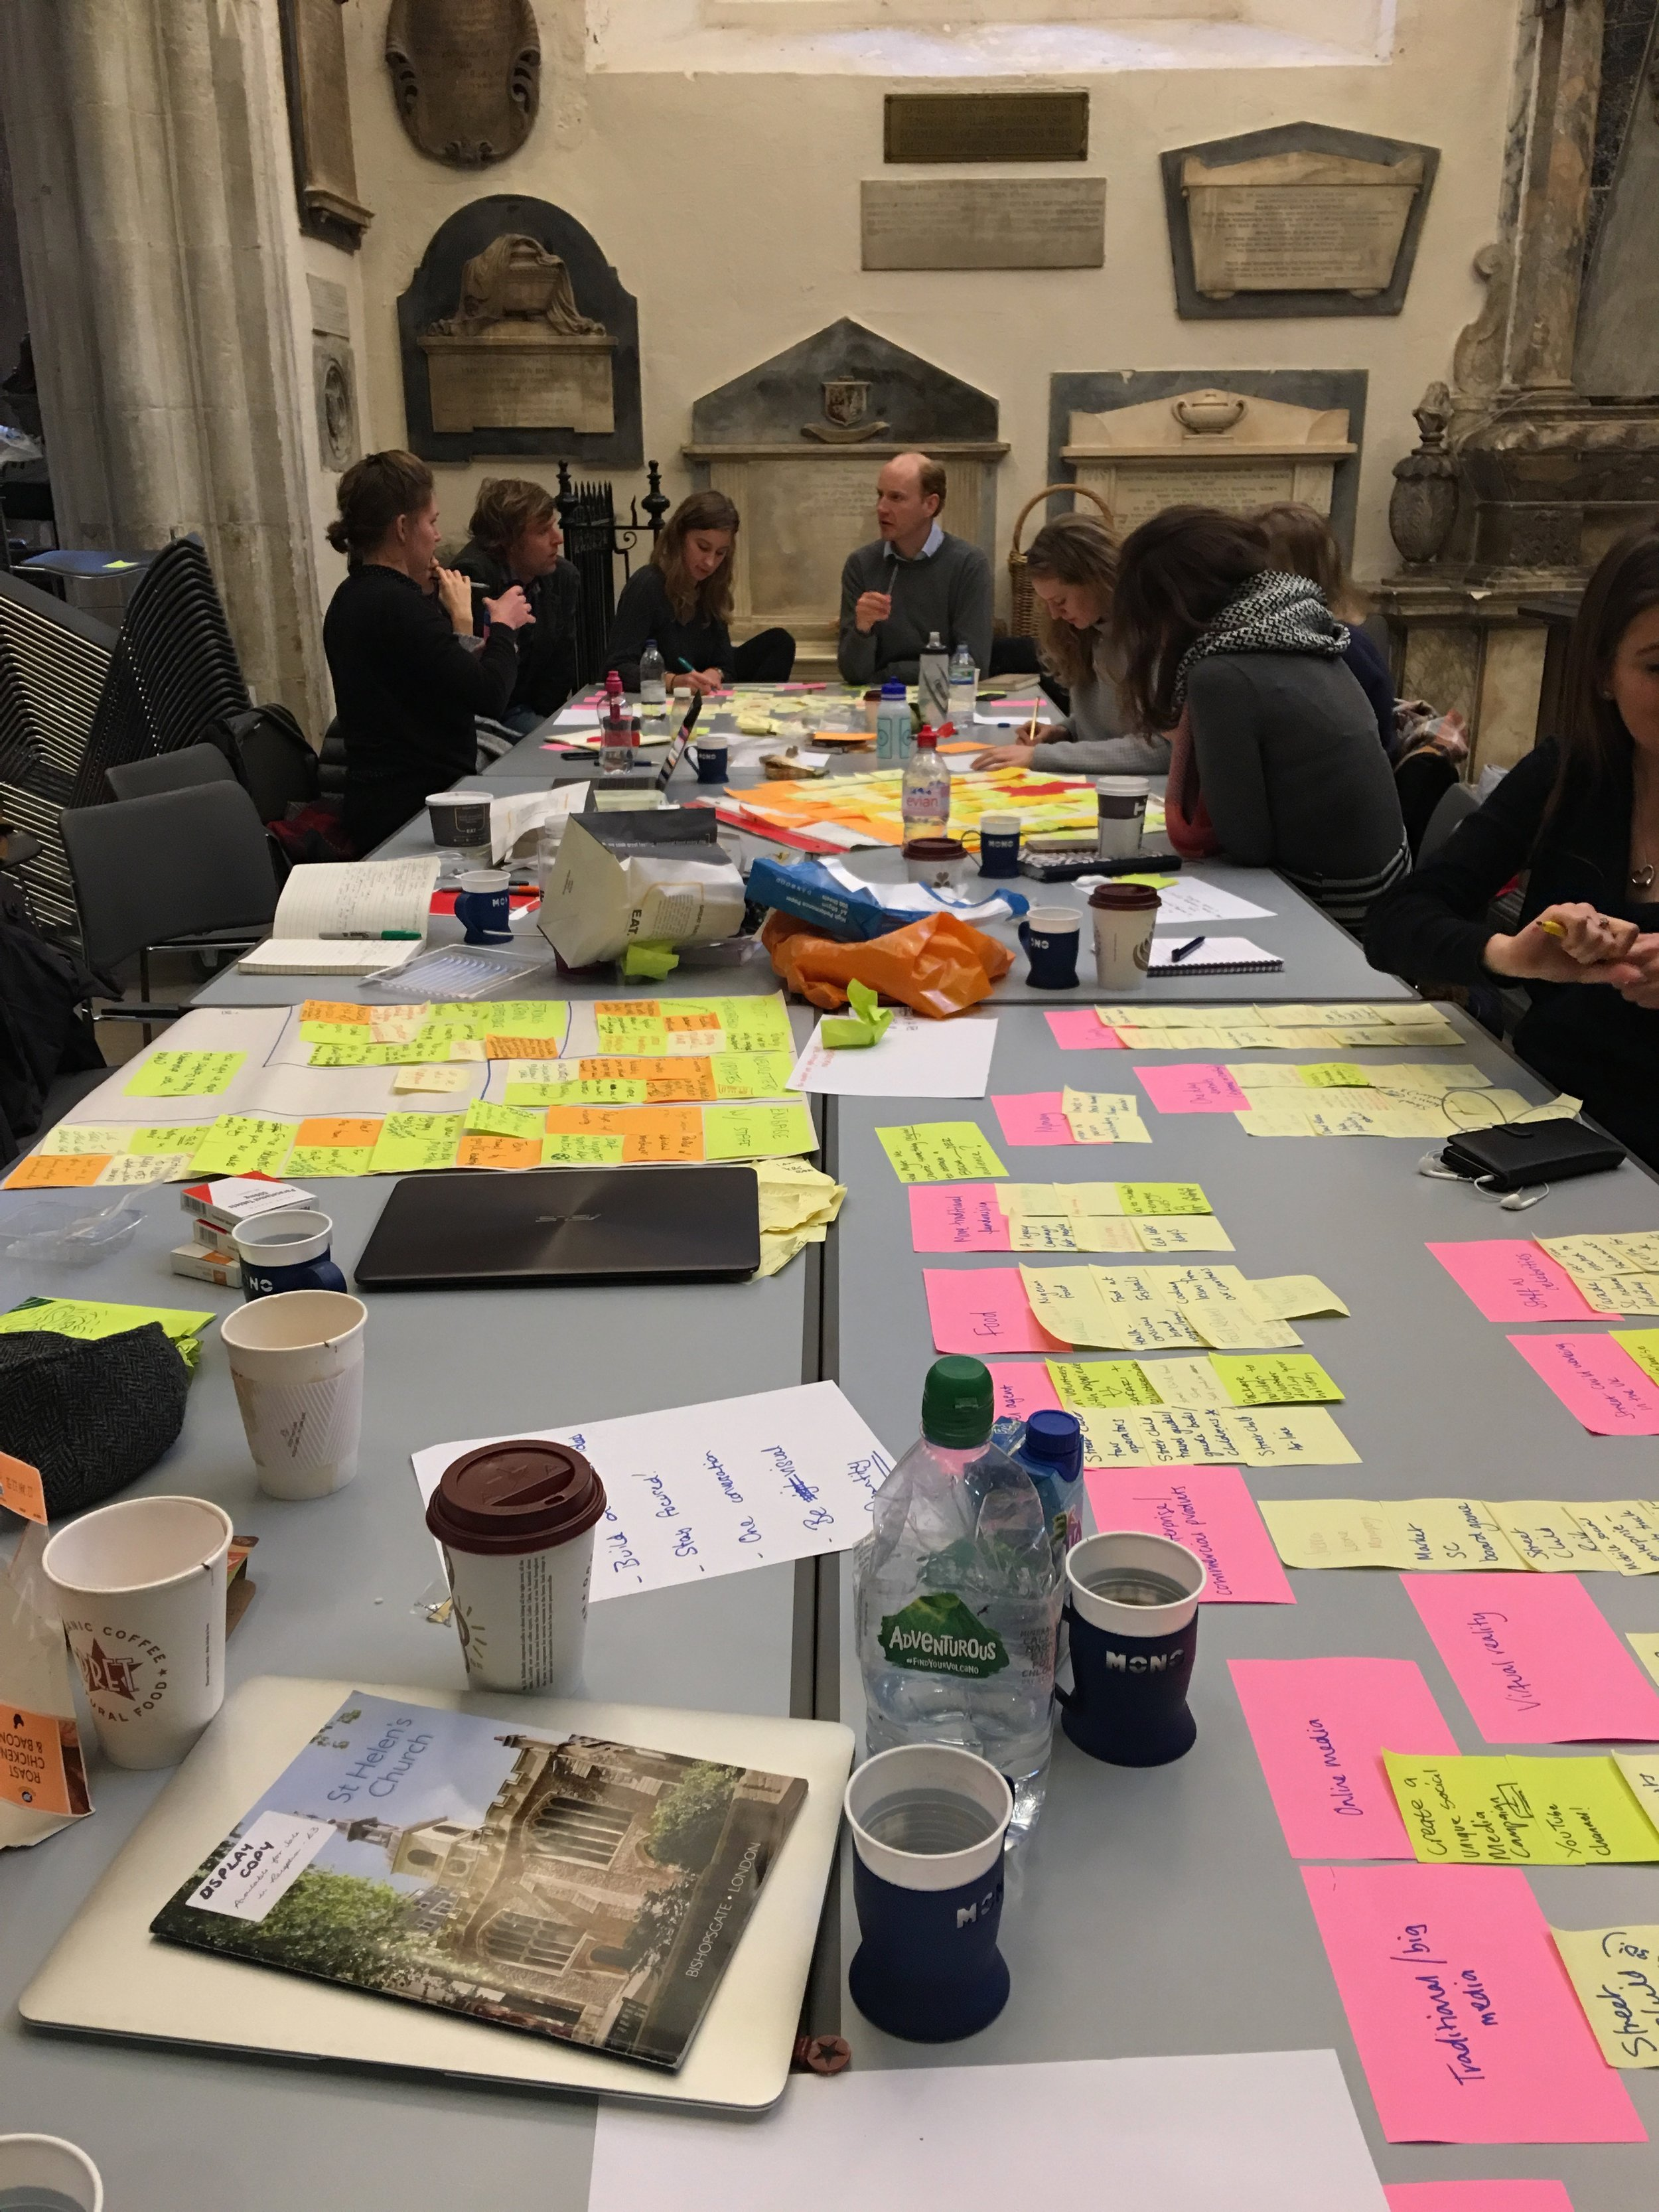 Train your team in human-centered design - The innovation process gets messy so we created a training programme to help teams feel creatively confident and integrate human-centered design into their business